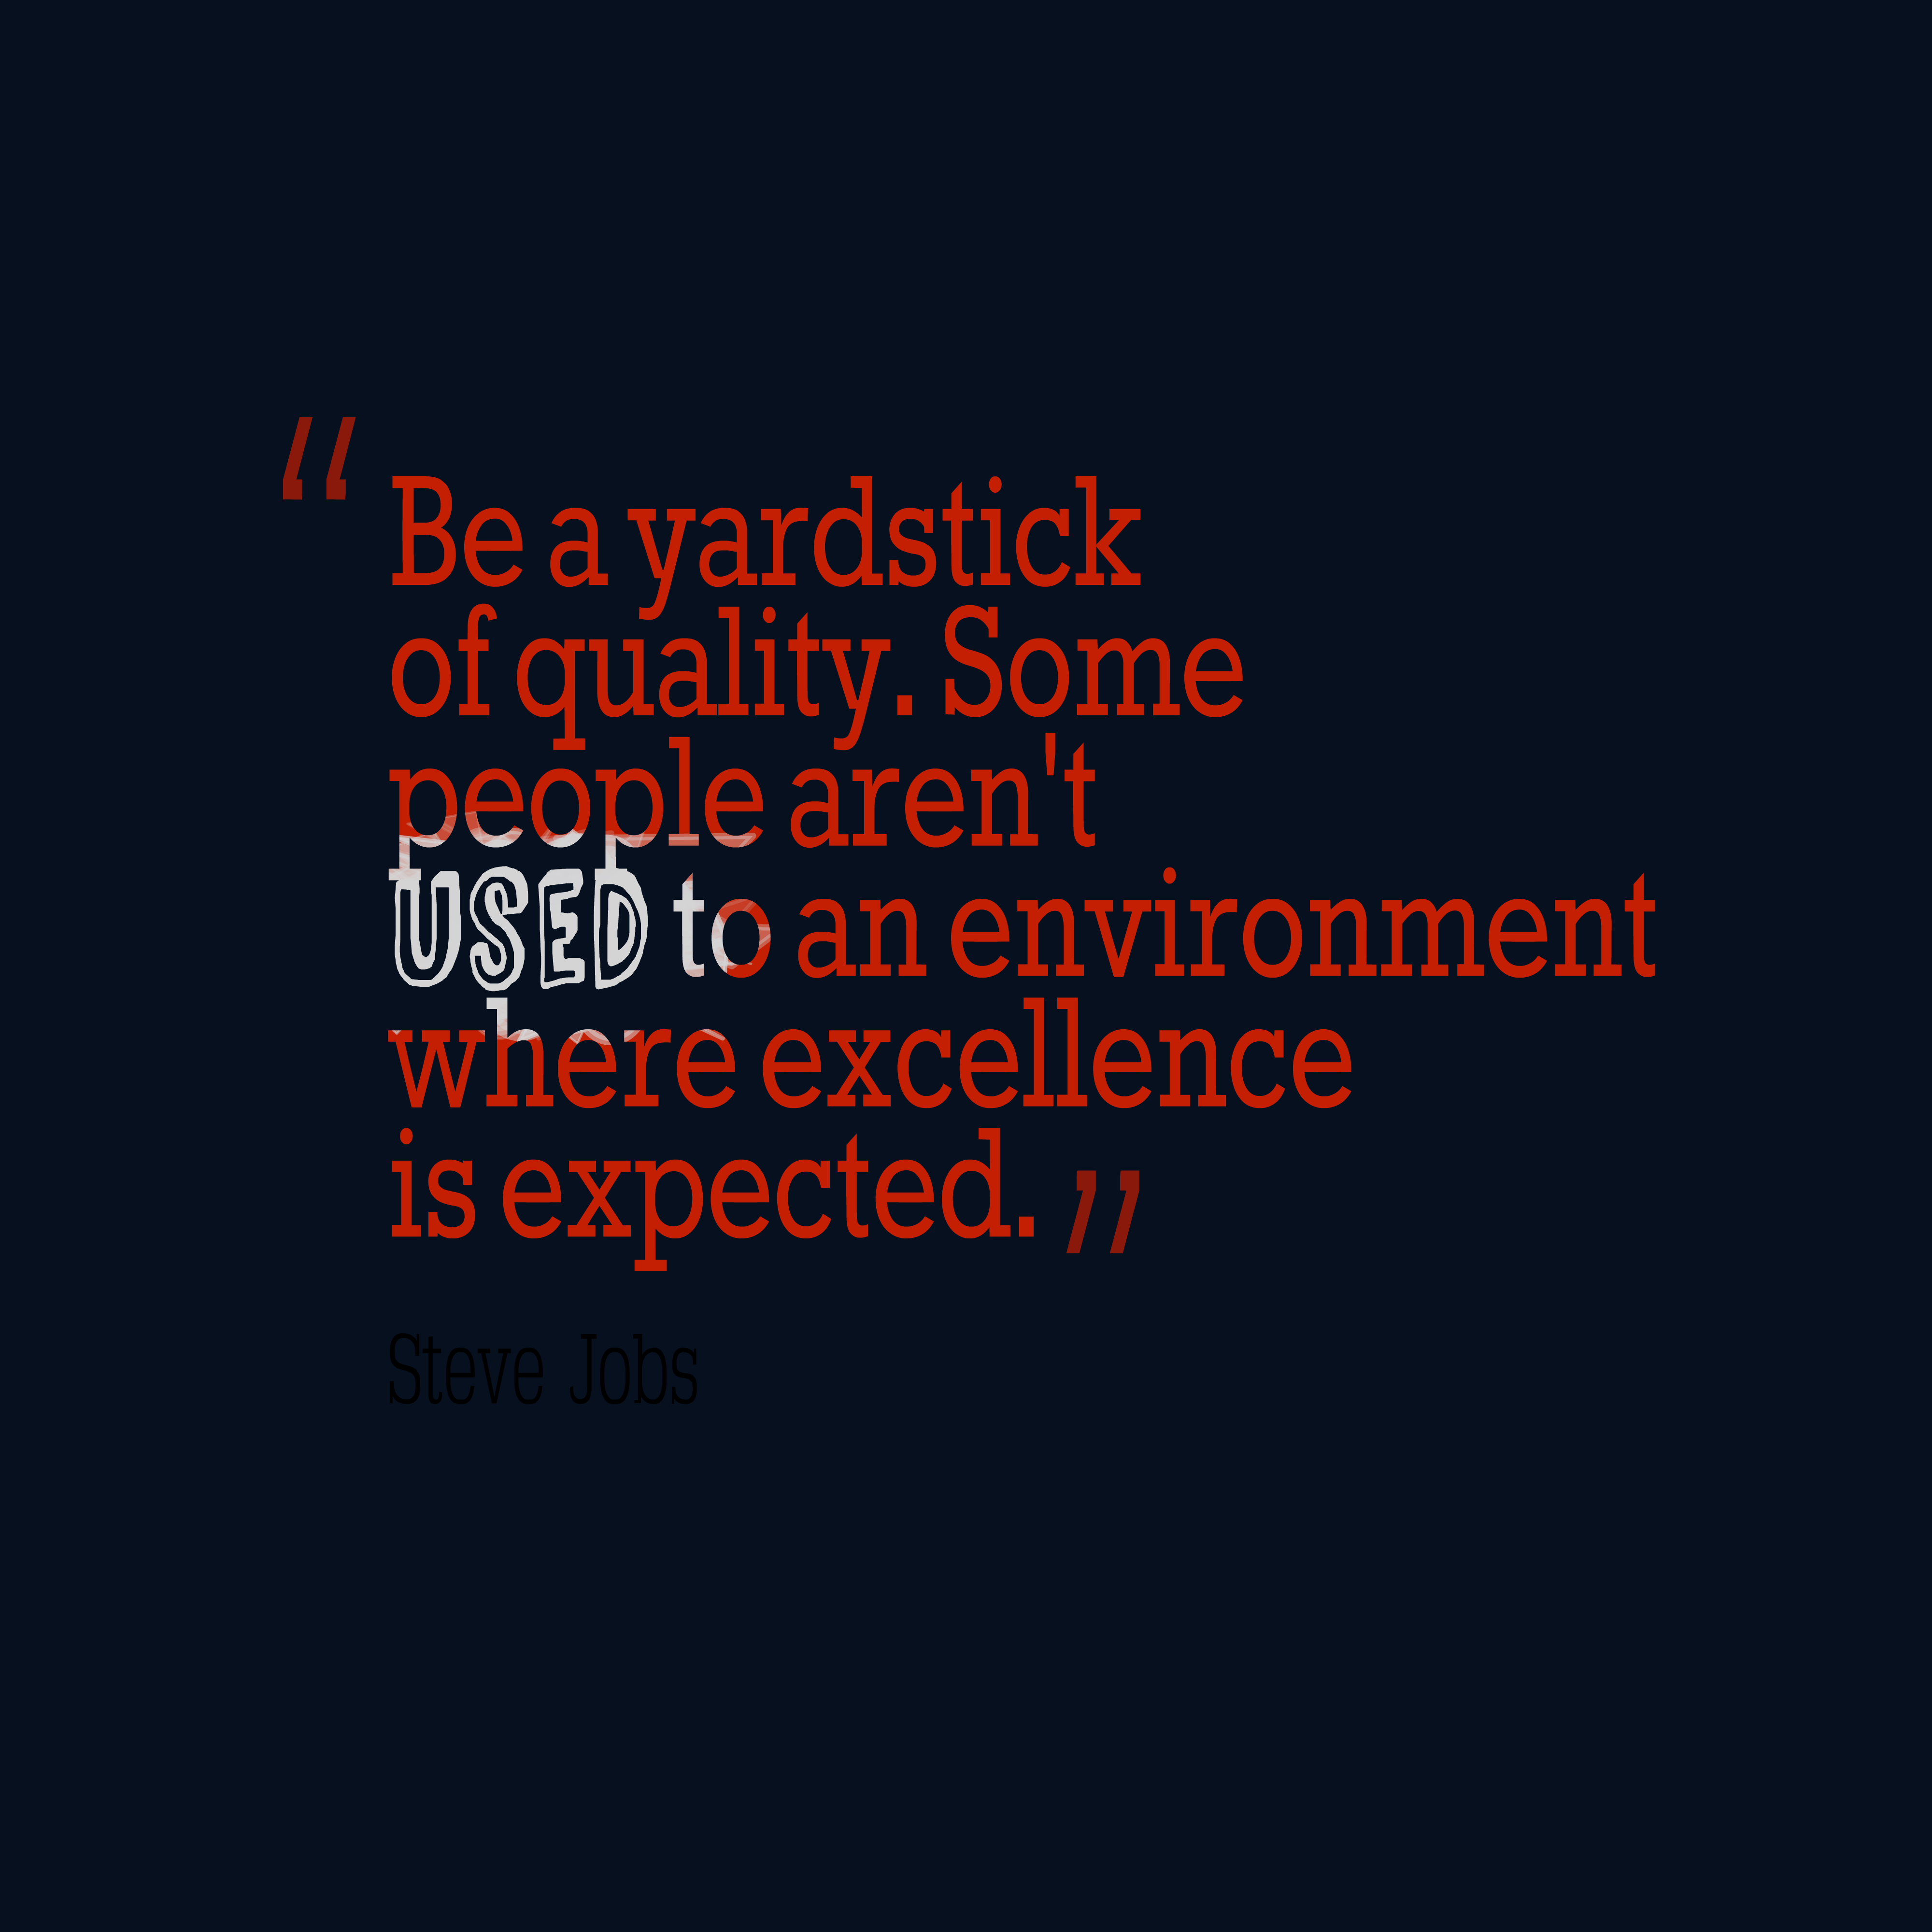 Quotes image of Be a yardstick of quality. Some people aren't used to an environment where excellence is expected.